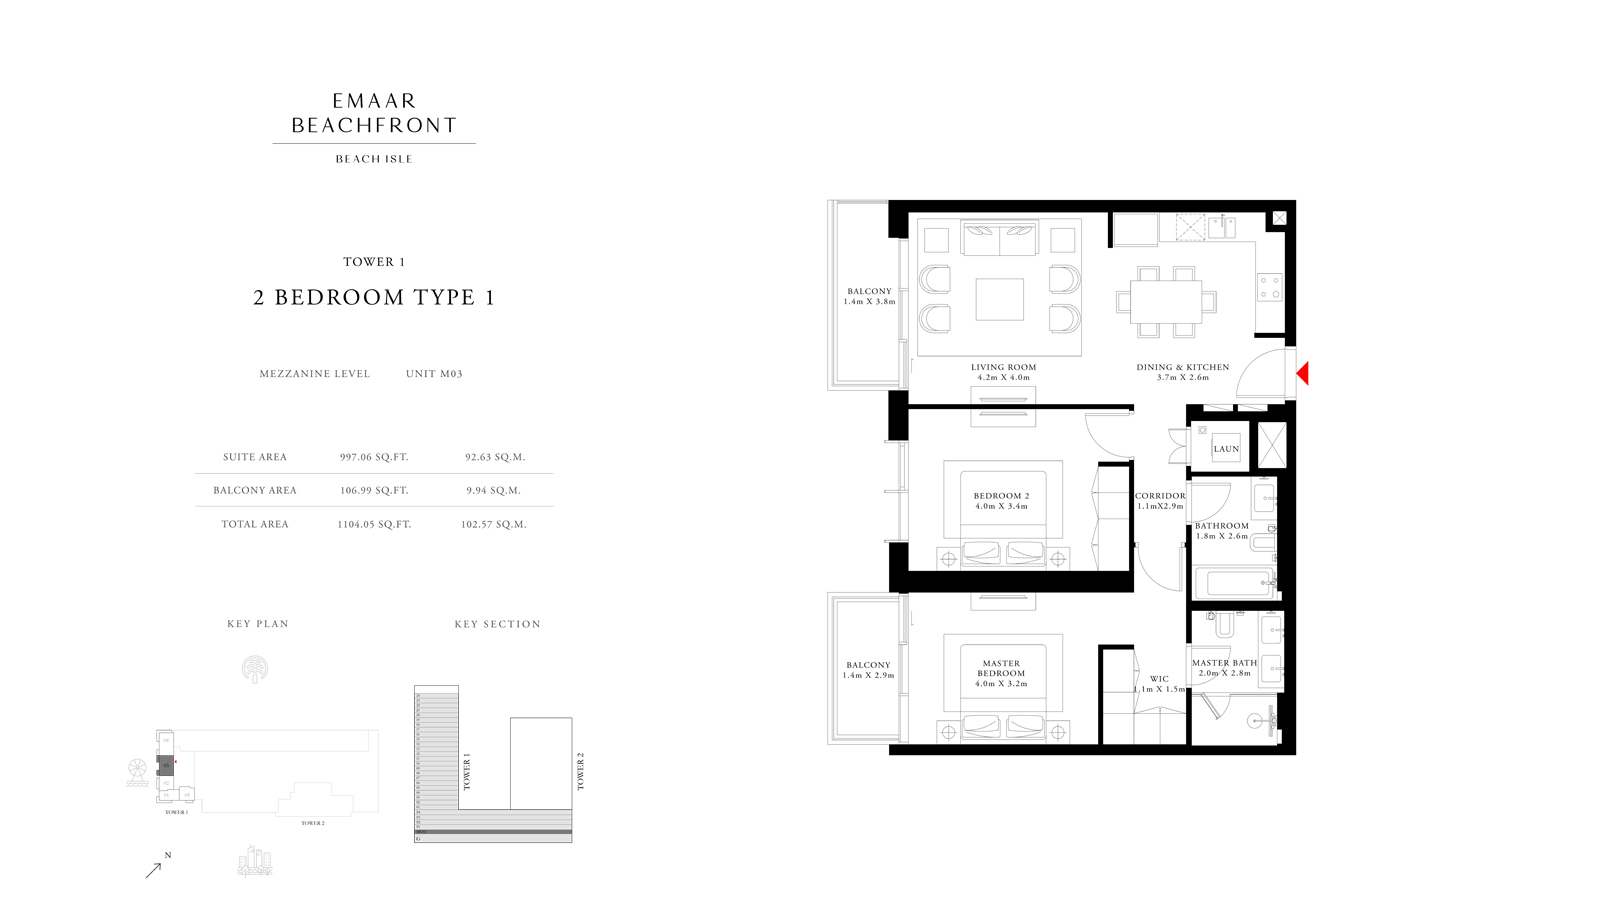 2 Bedroom Type 1 Tower 1, Size 1104    sq. ft.